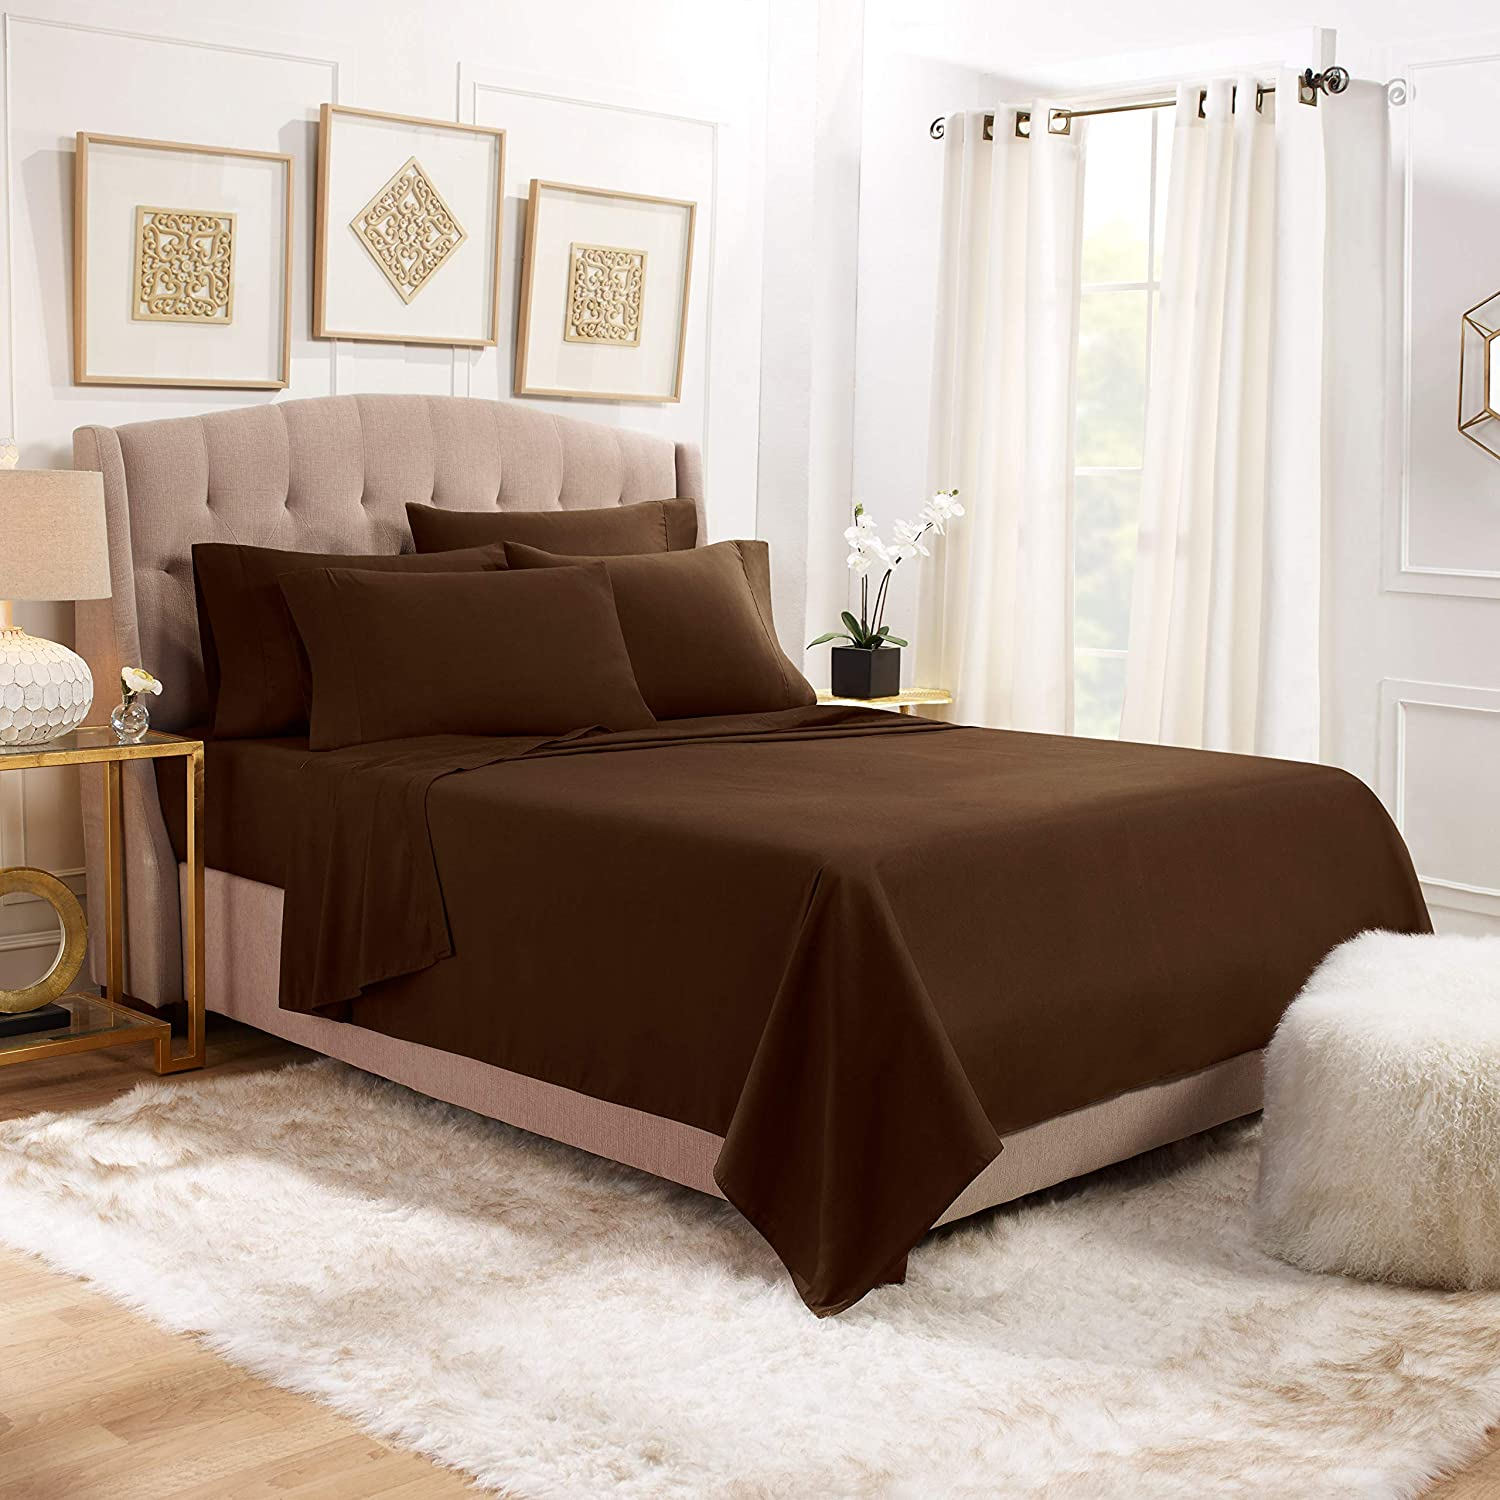 6 Piece King Sheets - Bed Sheets King Size – Bed Sheet Set King Size - 6 PC Sheets - Deep Pocket King Sheets Microfiber King Bedding Sets Hypoallergenic Sheets - King - Chocolate Brown